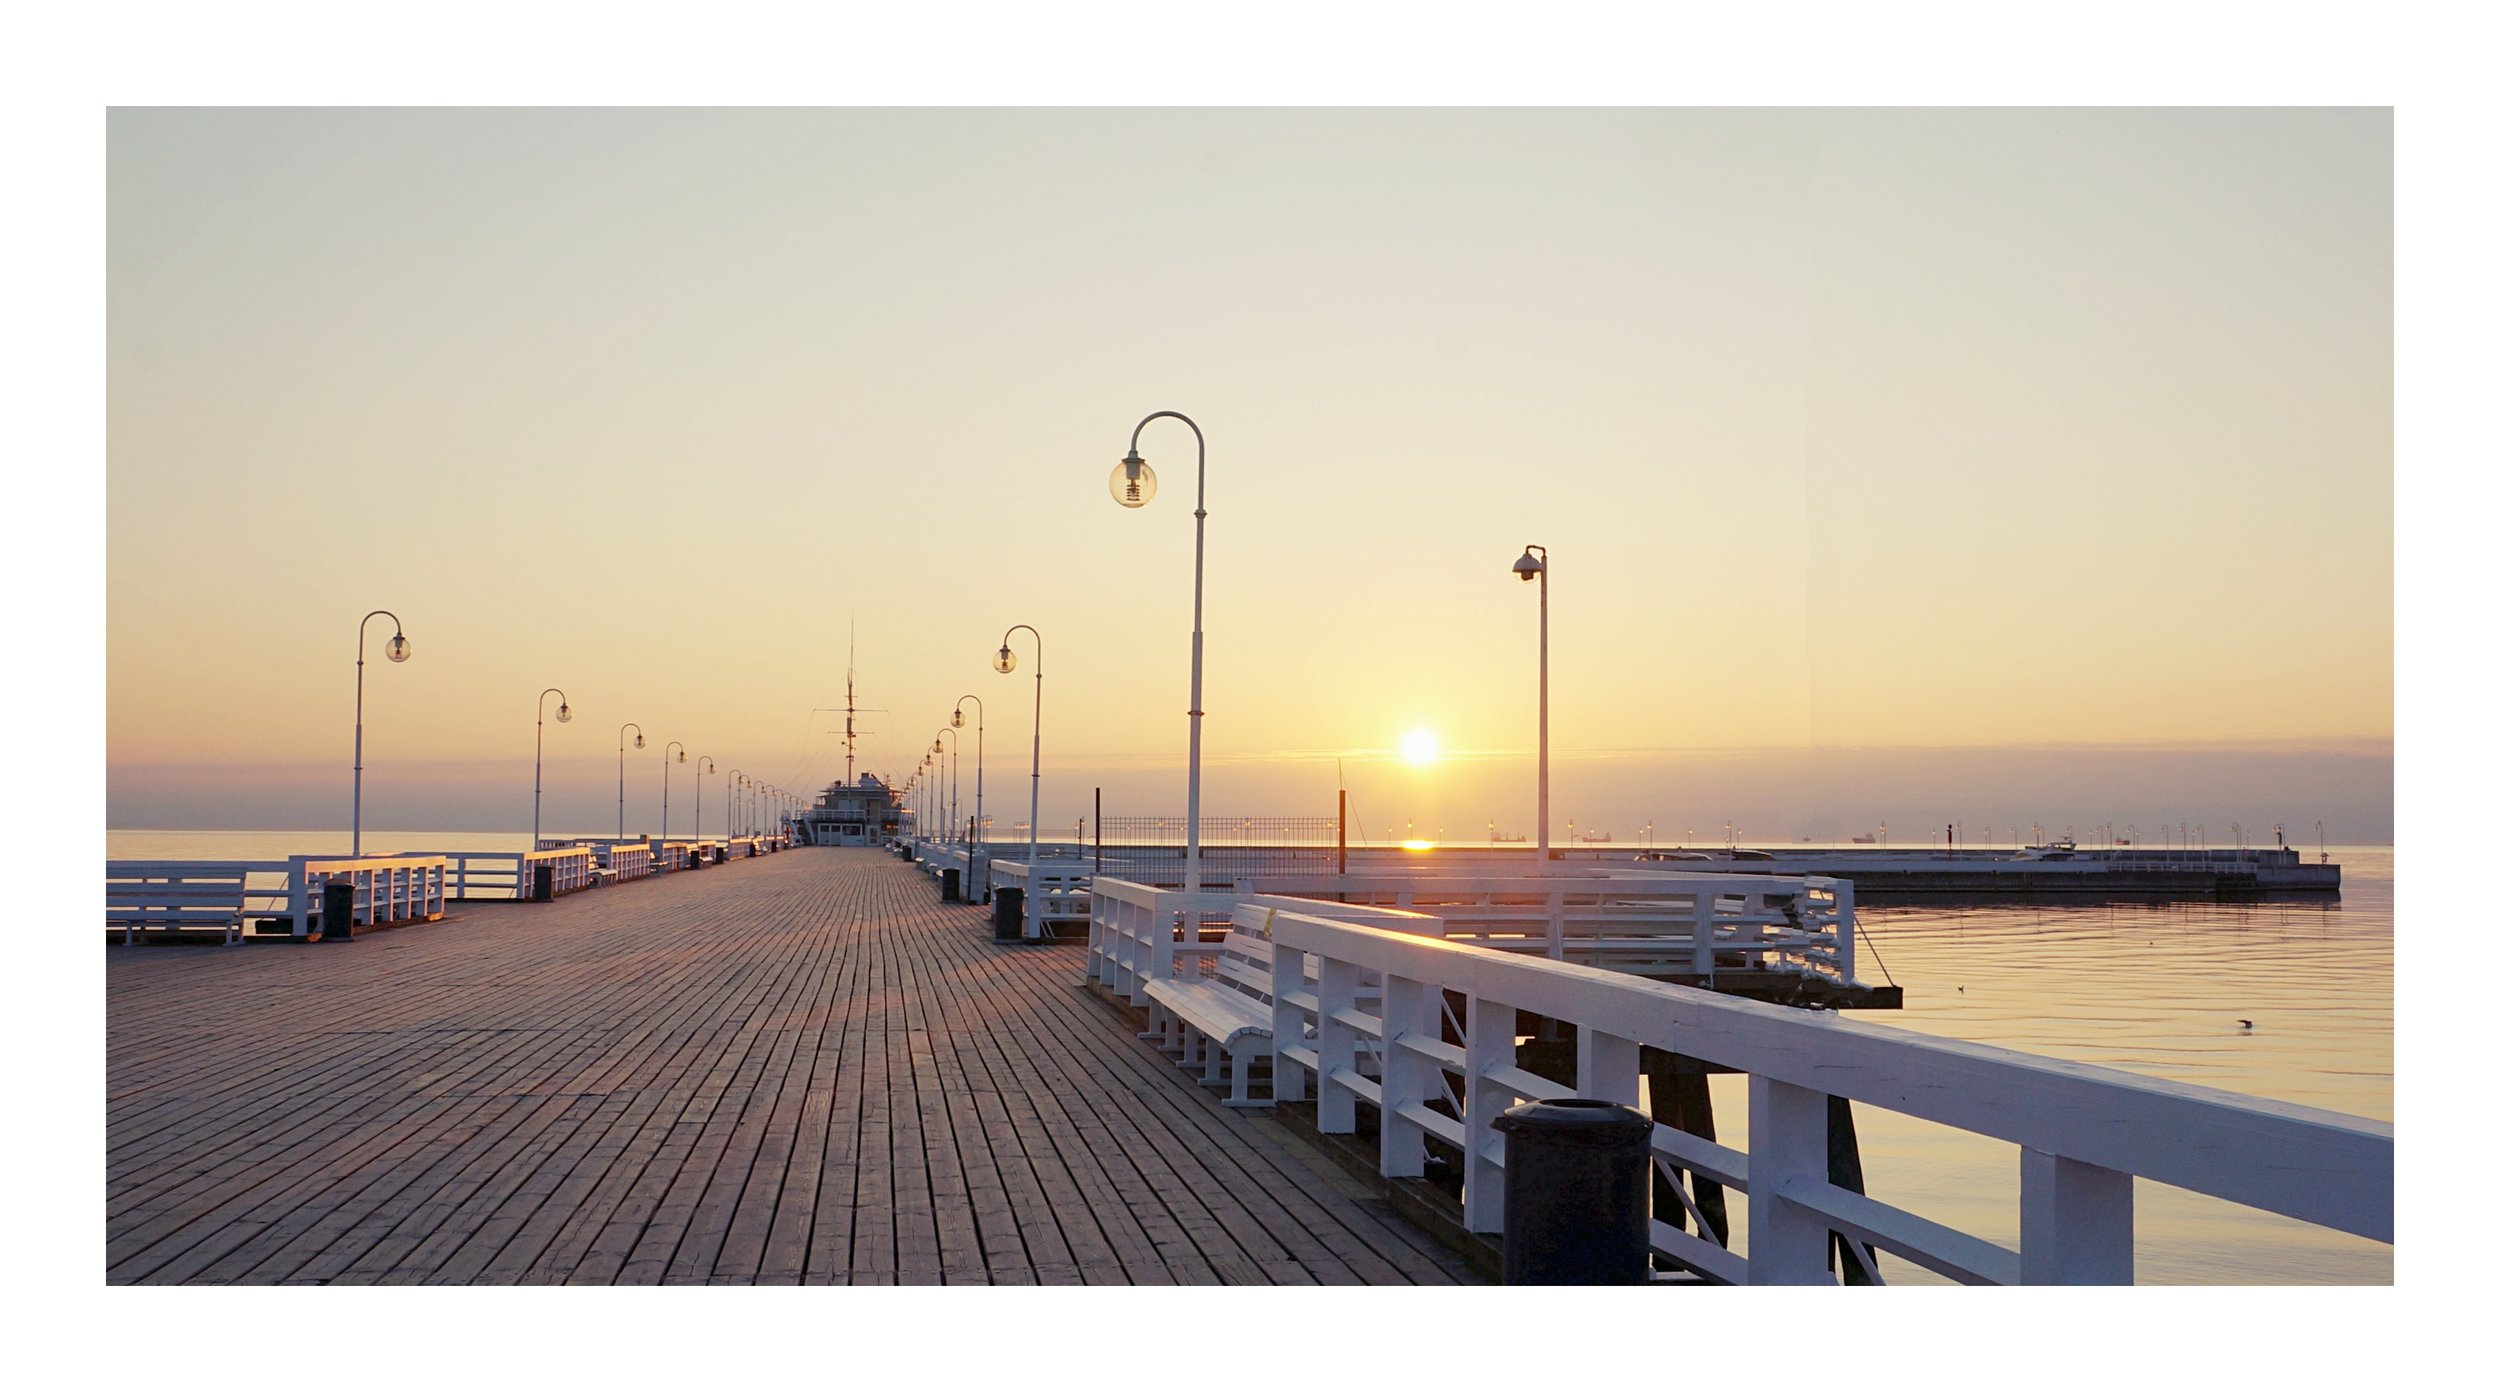 THE PIER - The pier in Sopot is 511,5 m long, which makes it the longest in Poland. It is the most recognizable and the most visited object of the city. Over 450 meters of the wooden bridge enters into the Baltic Sea, and at its end there is a modern harbor, housing up to 100 yachts.